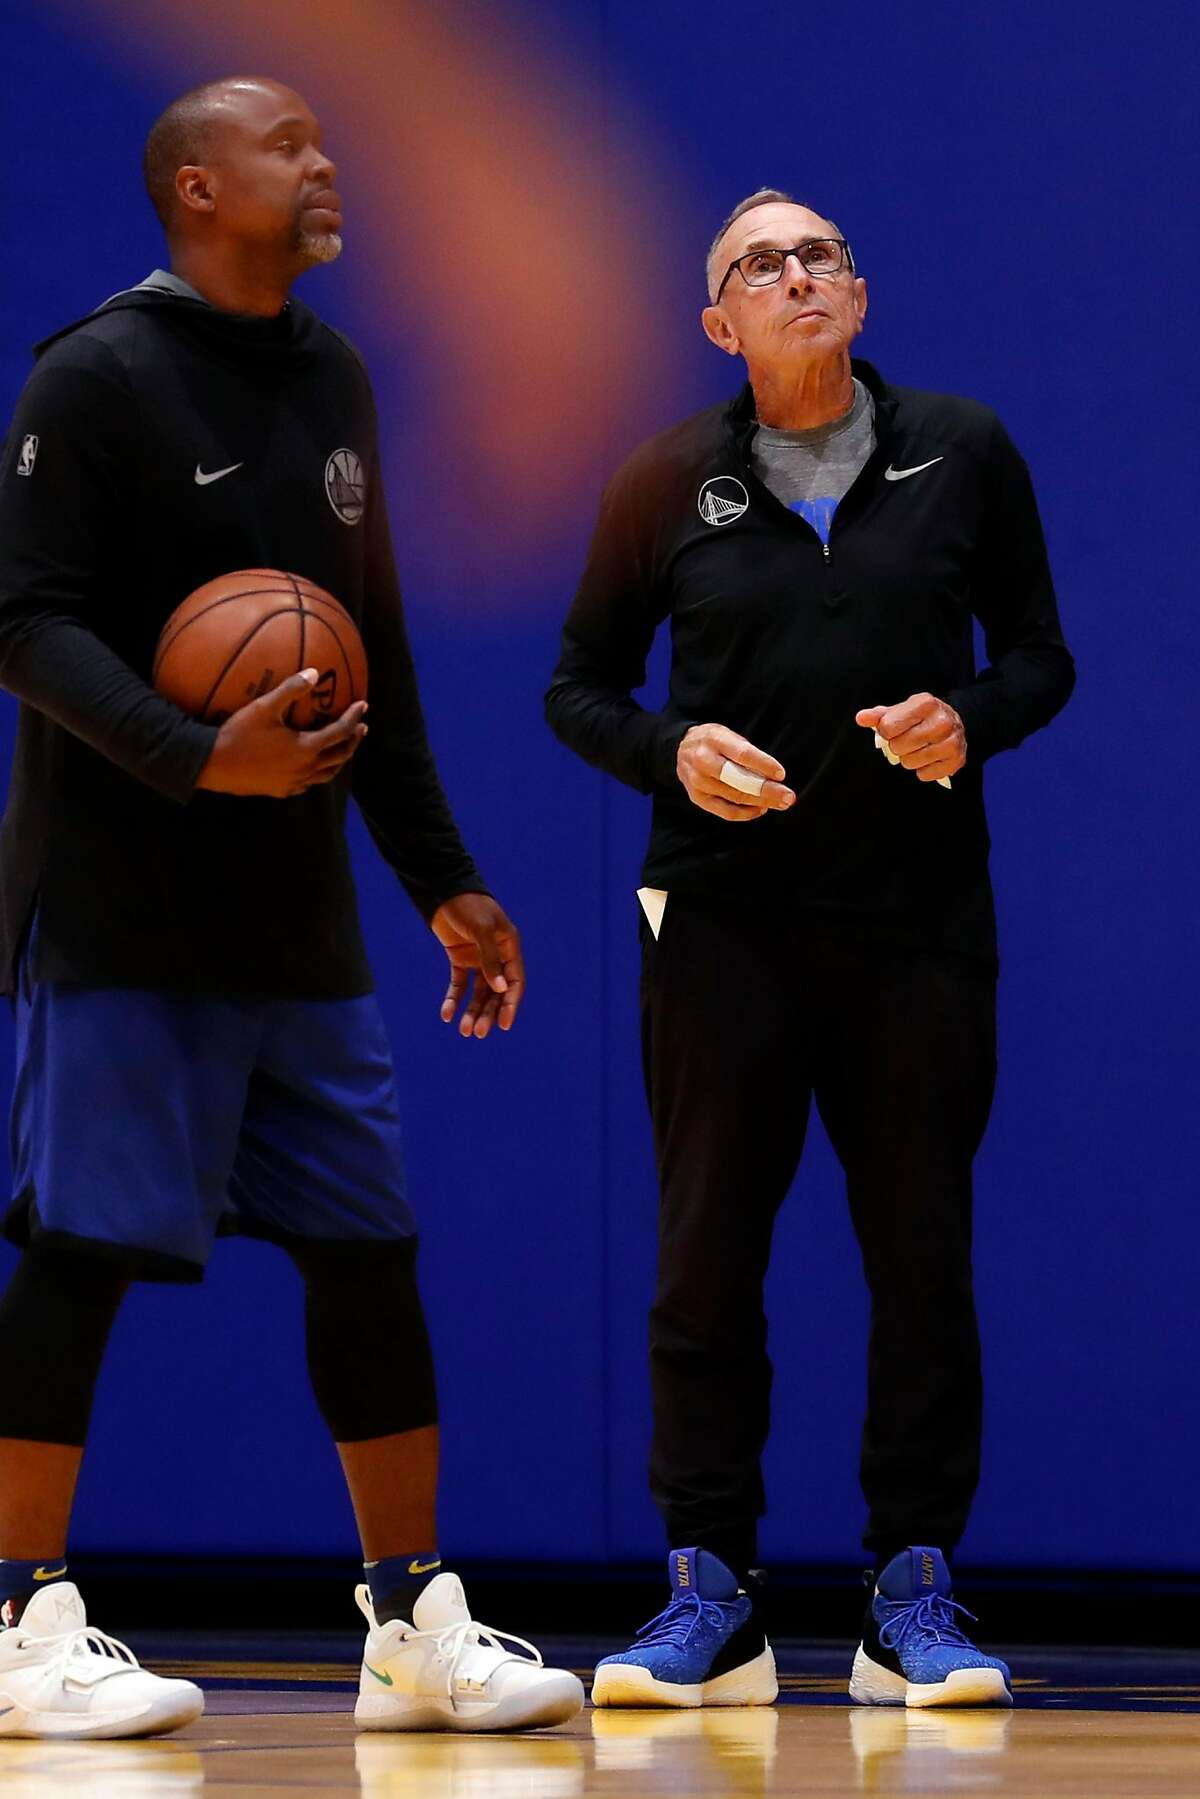 Golden State Warriors' assistant coach Ron Adams (right) during training camp at Chase Center in San Francisco, Calif., on Tuesday, October 1, 2019.